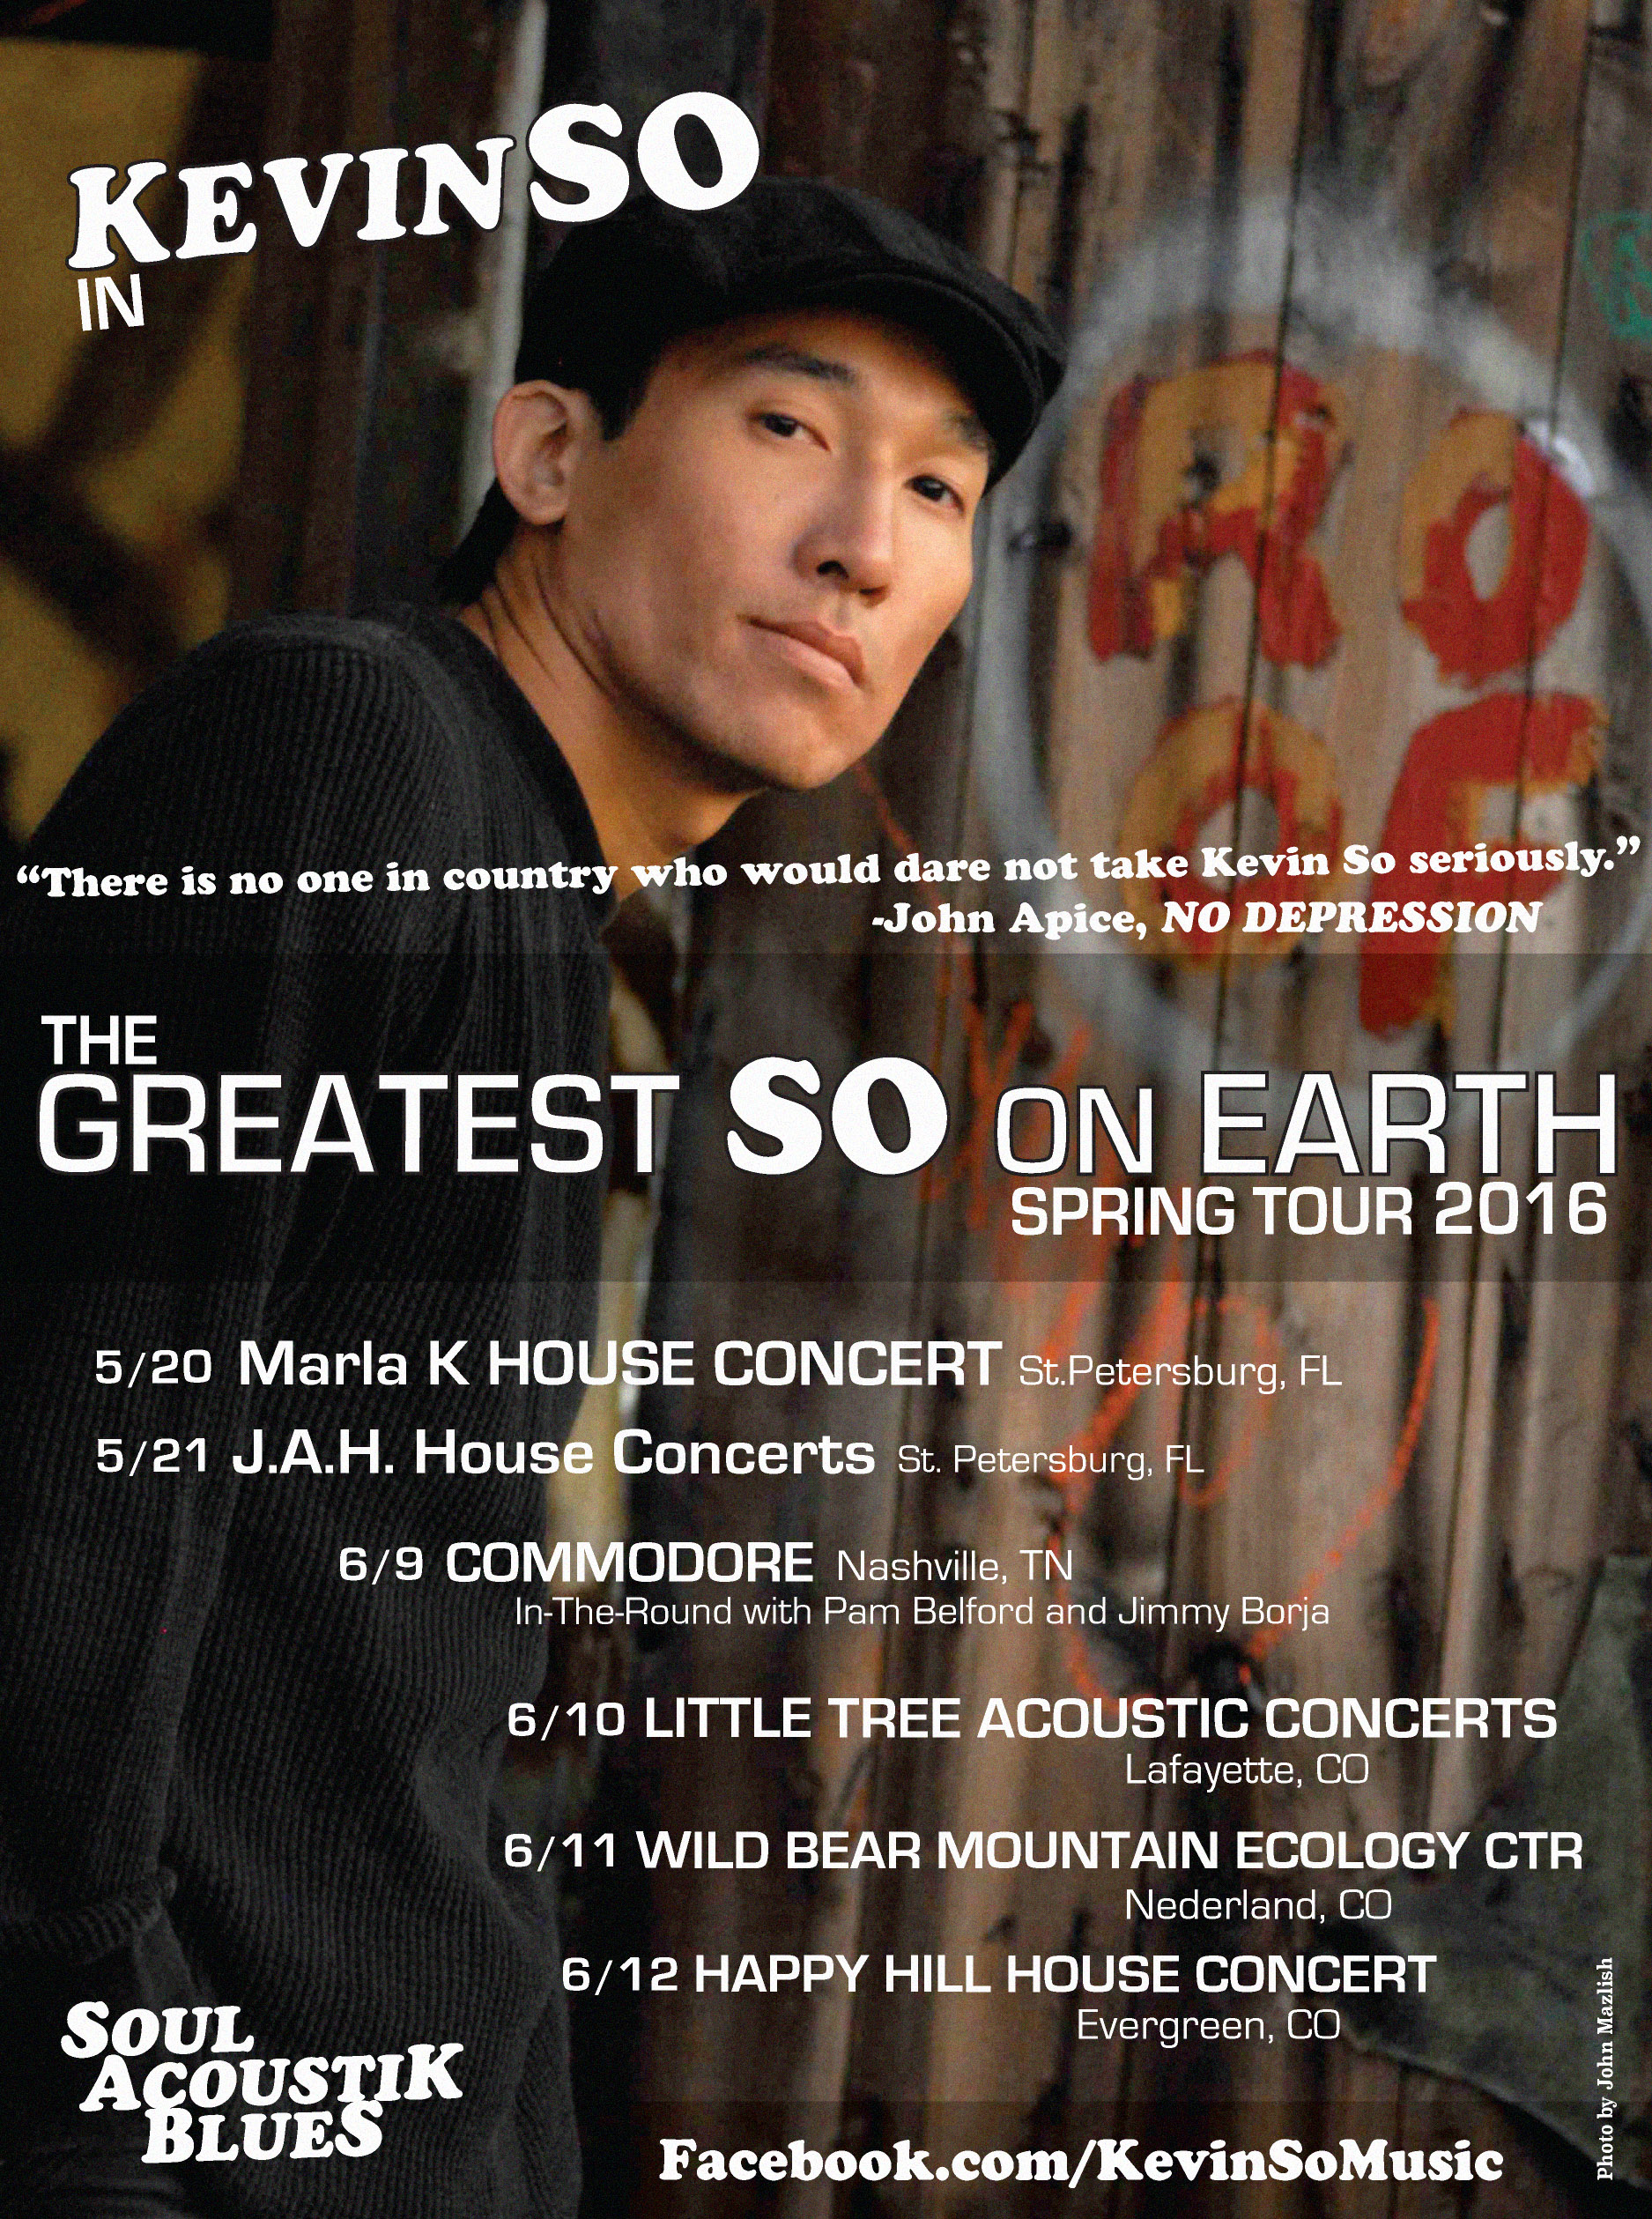 Kevin So on his Spring Solo Acoustik Blues Tour.